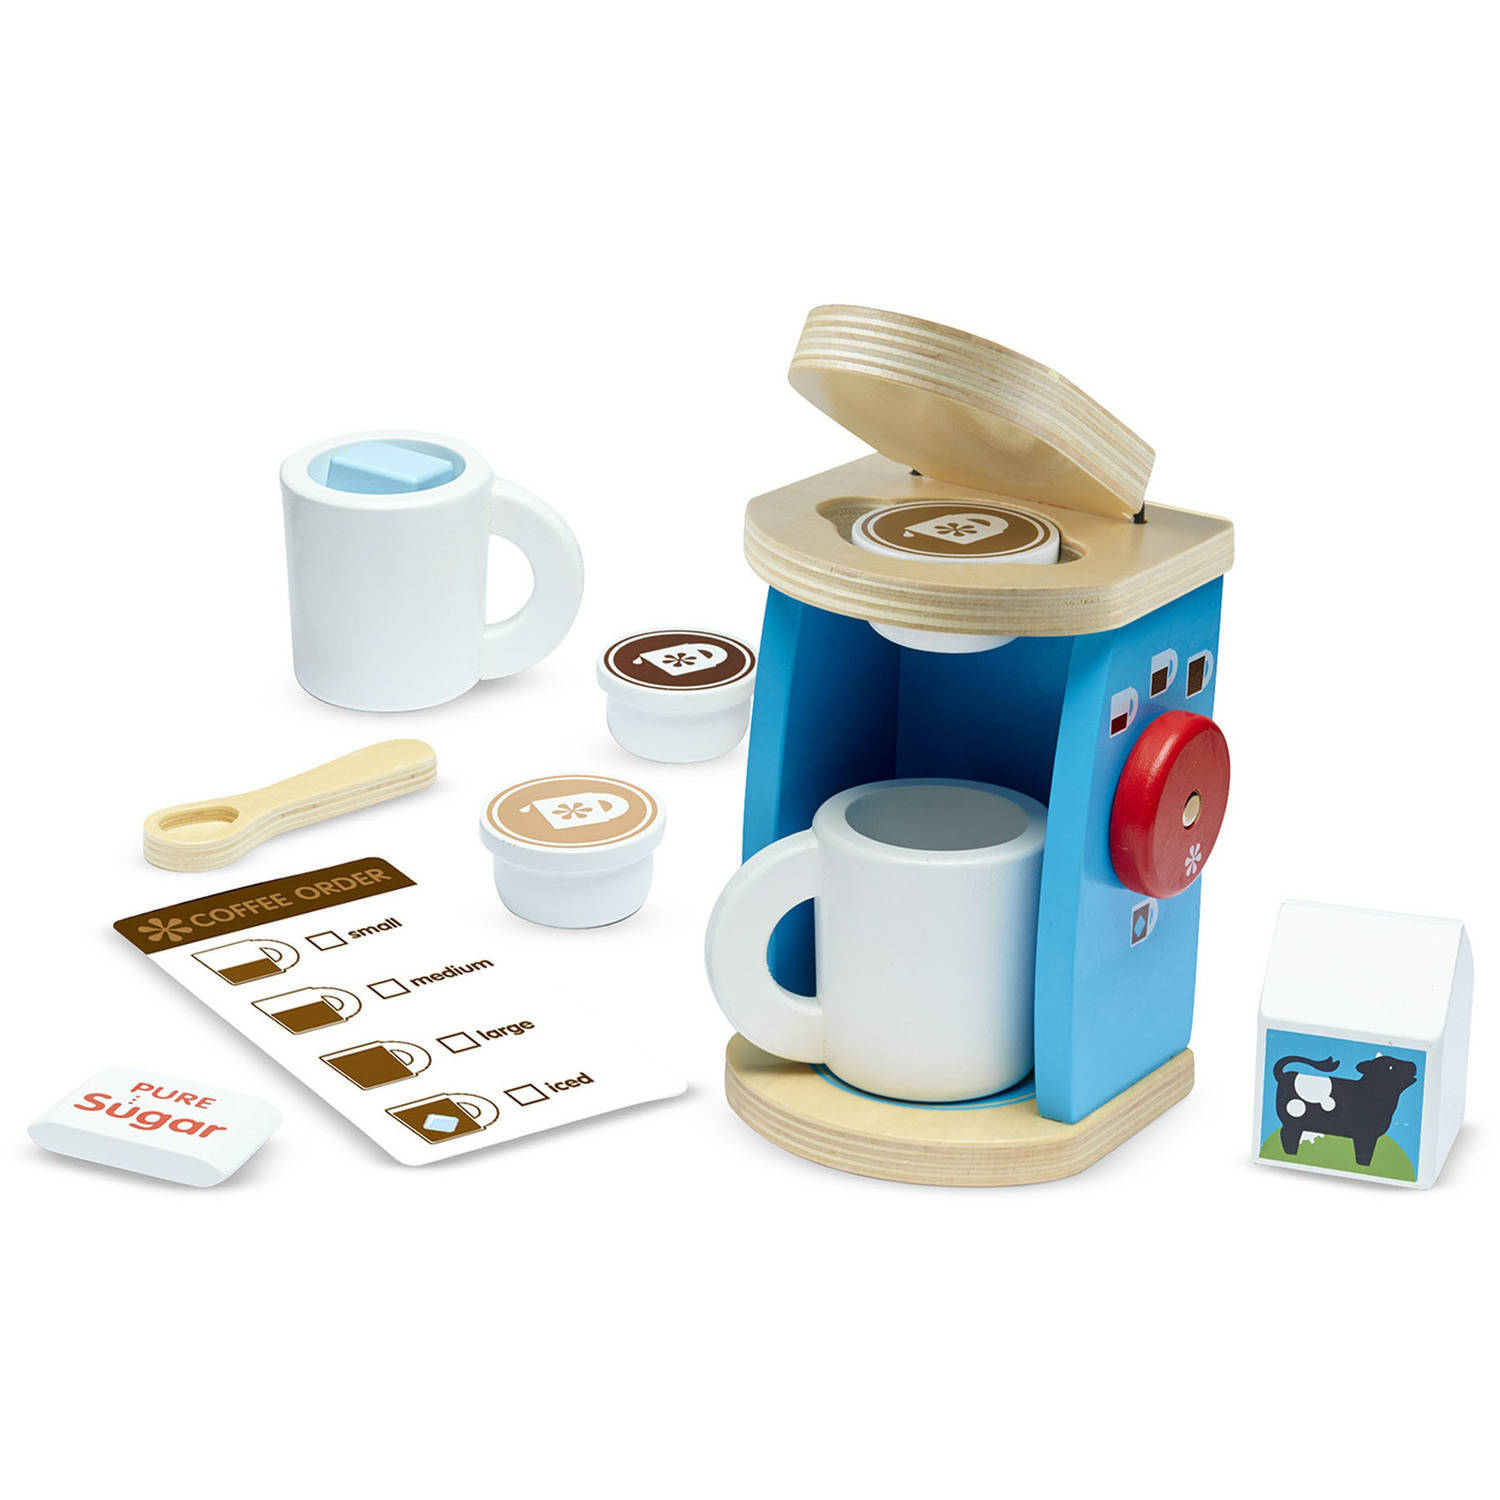 doug 11 brew and serve wooden coffee maker